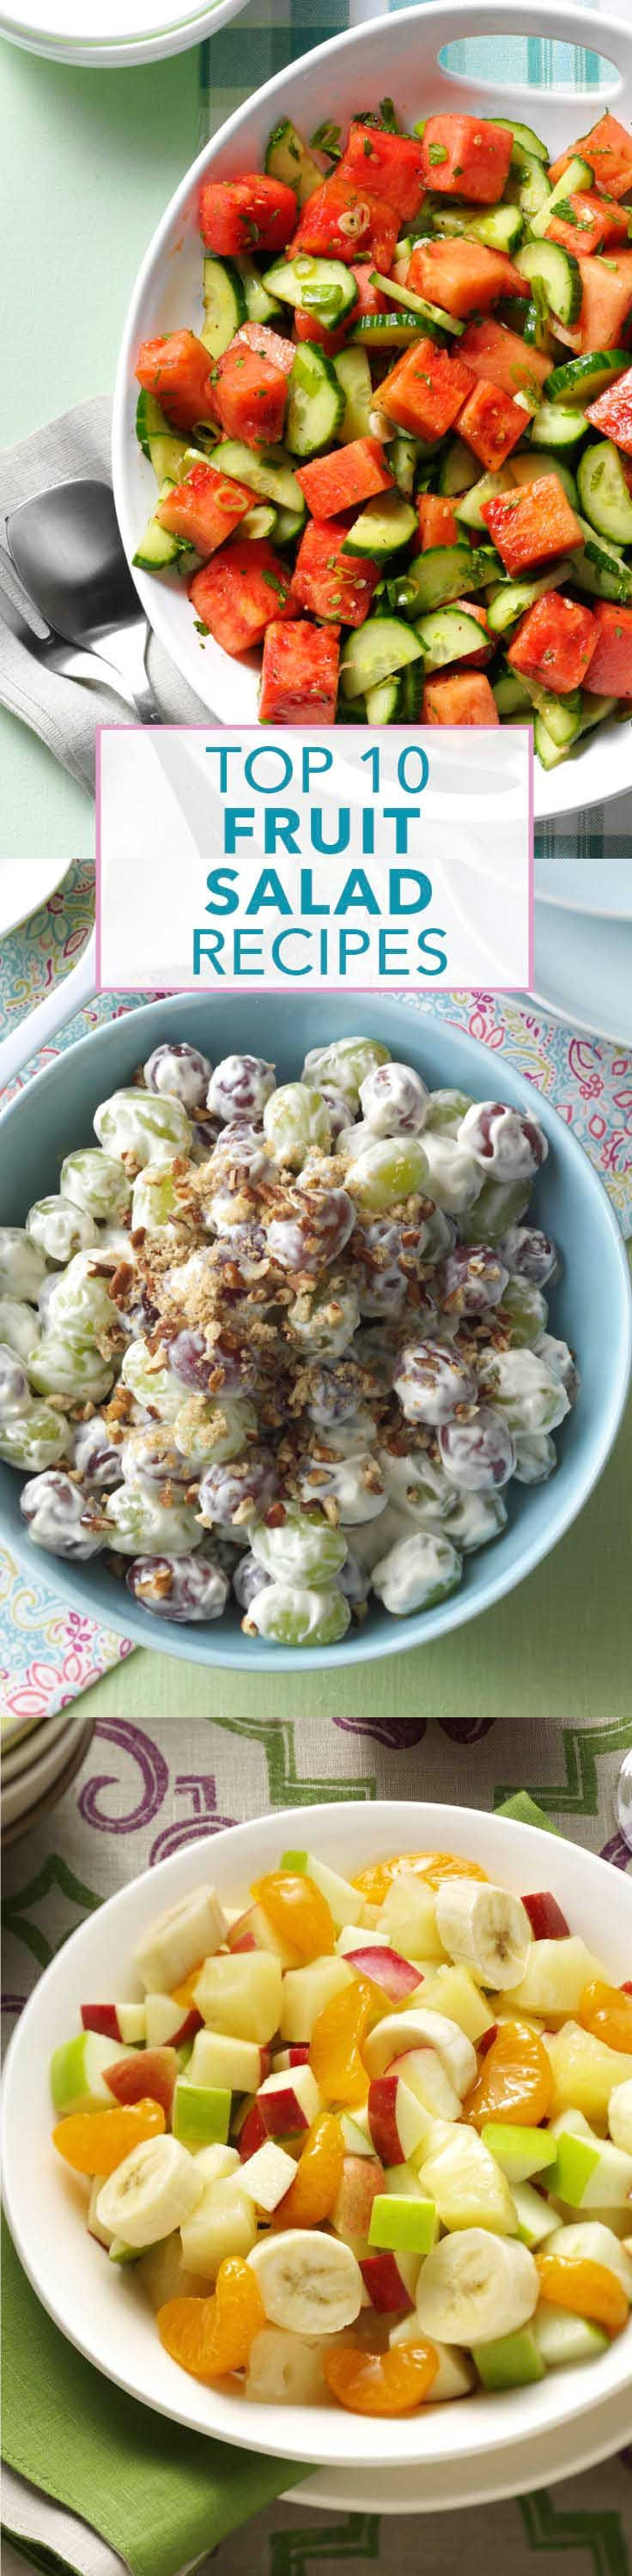 Salads For Thanksgiving Potluck  17 Best images about Potluck Salads on Pinterest